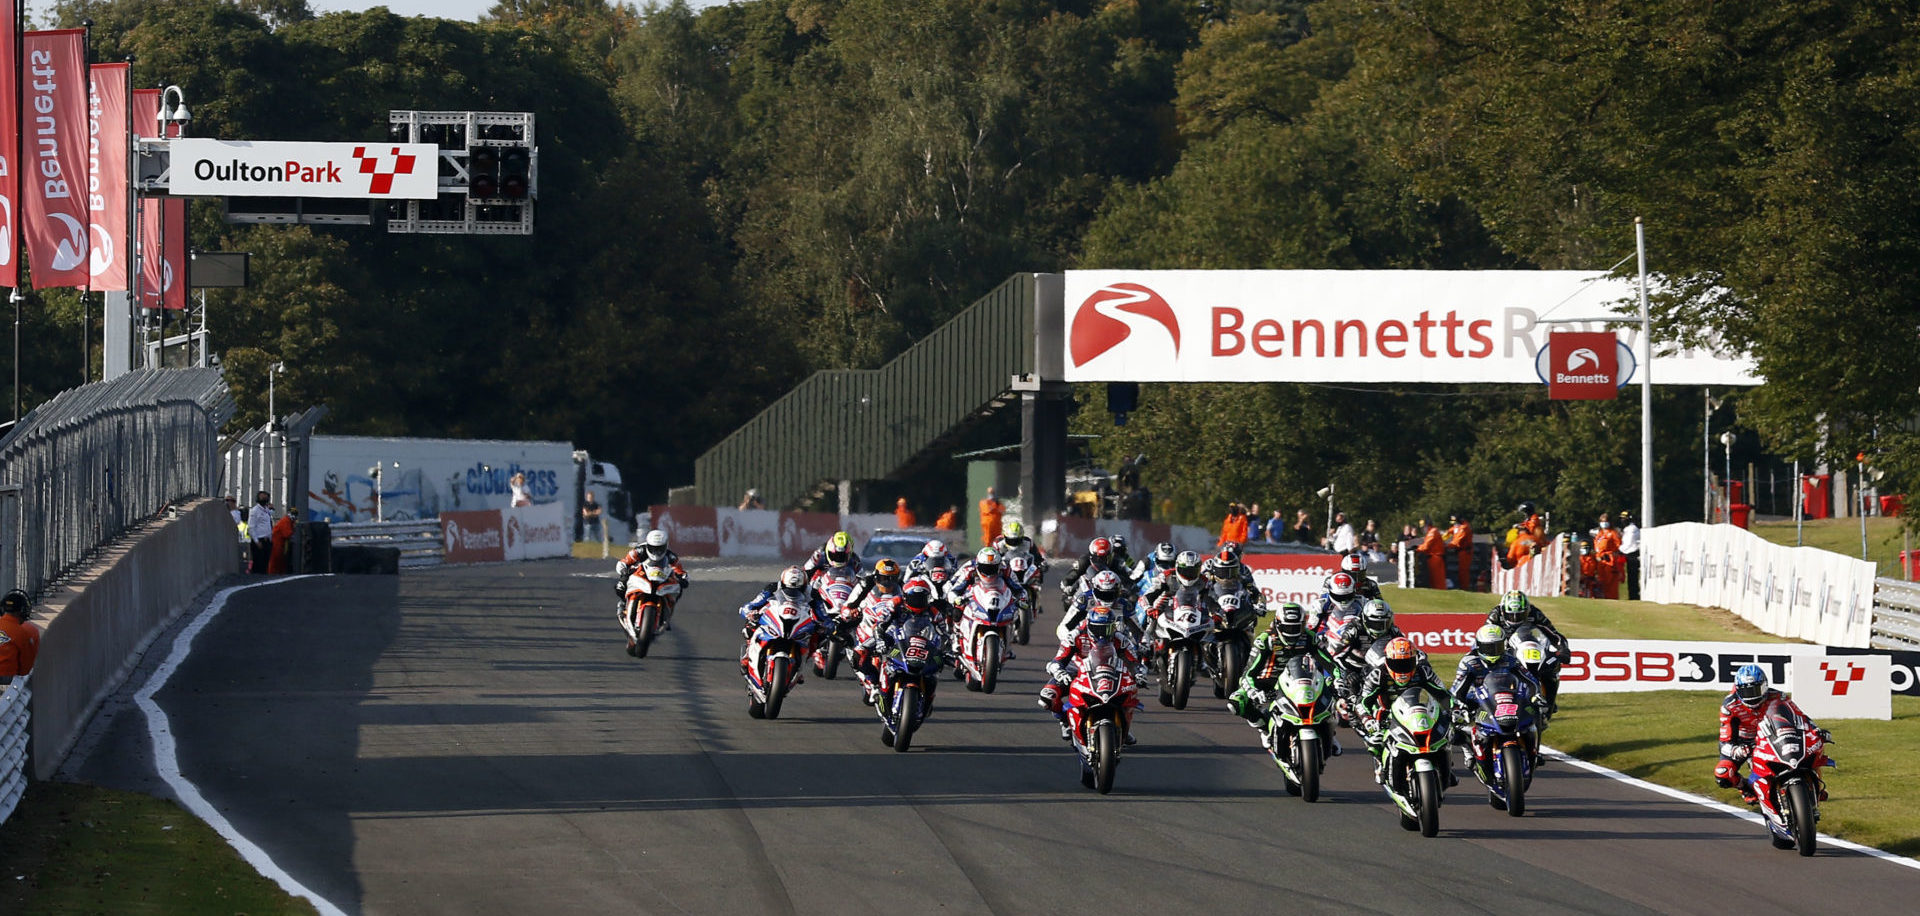 The start of a previous British Superbike race at Oulton Park. Photo courtesy MSVR.